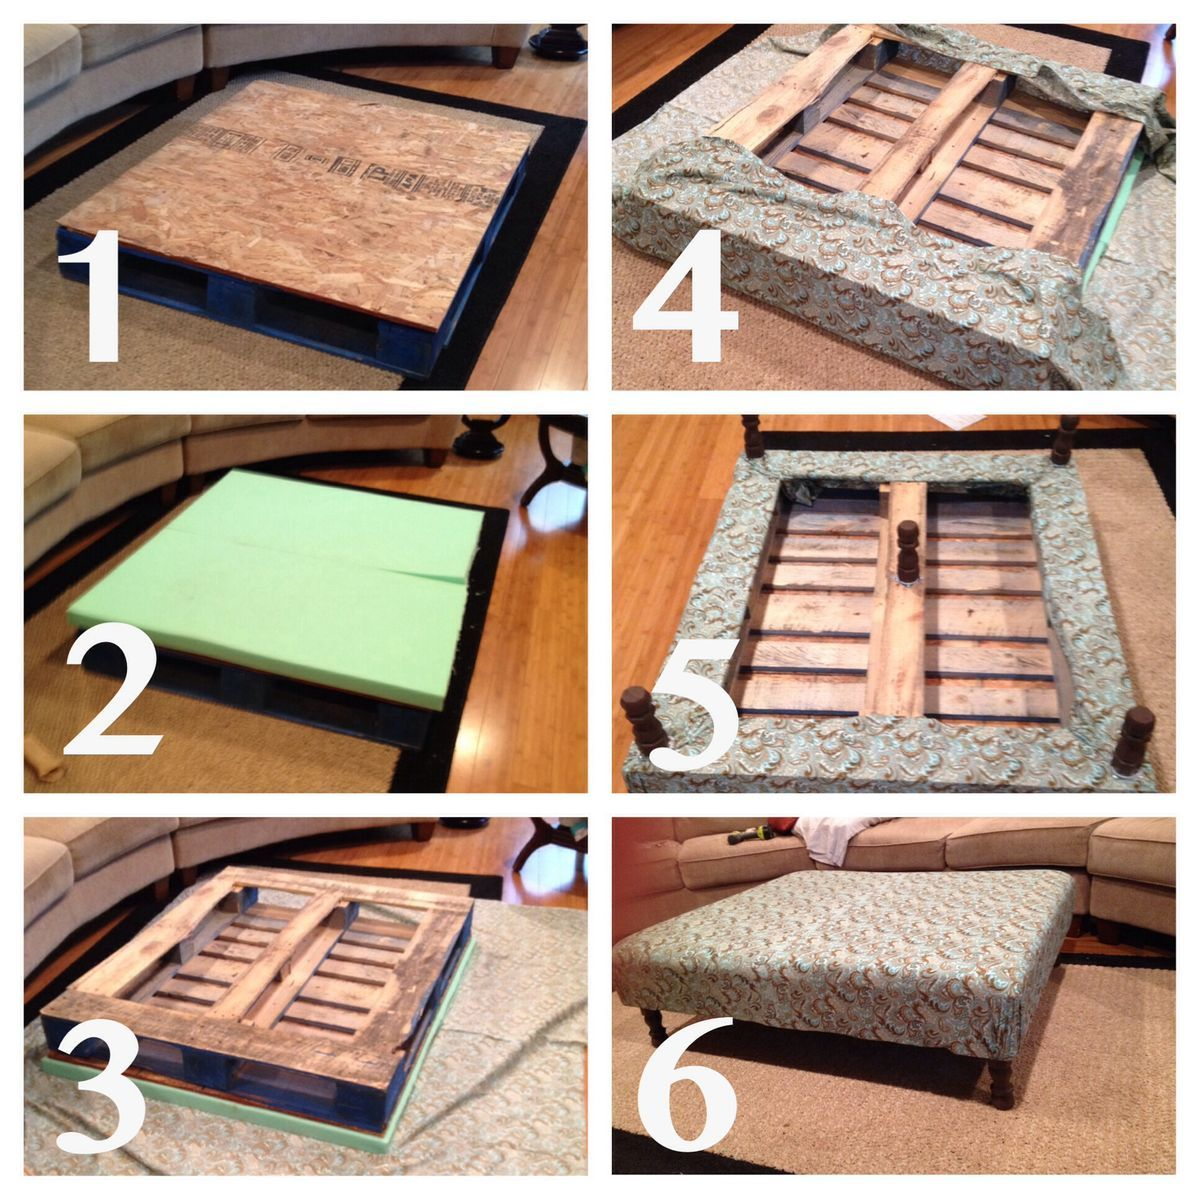 Pin By Sara Foster On Home Stuff Diy Pallet Projects